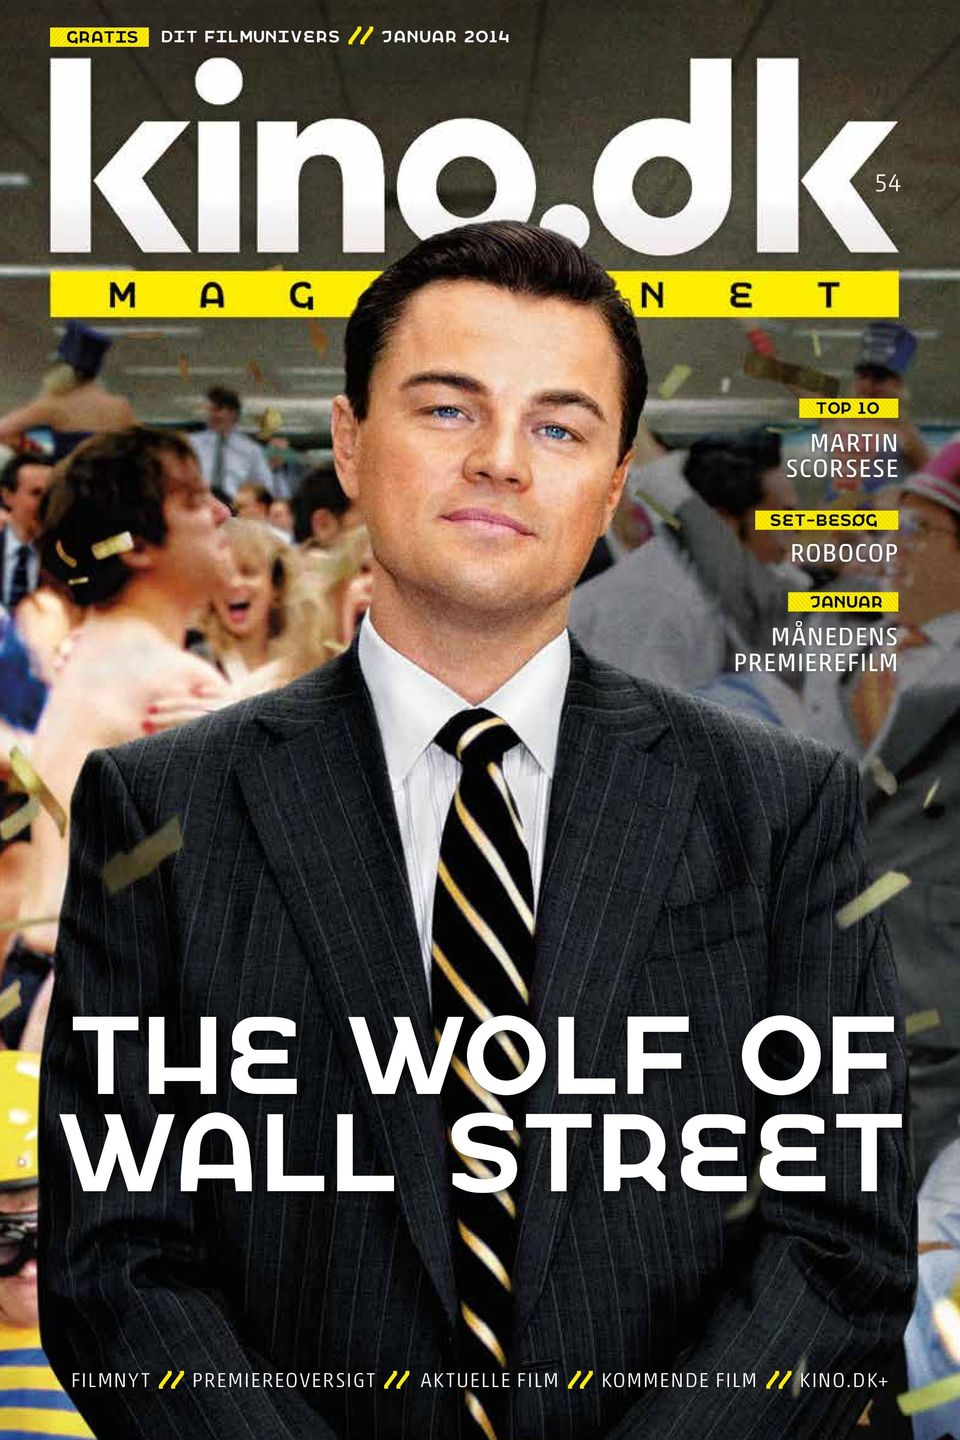 PREMIEREFILM THE WOLF OF WALL STREET FILMNY T //